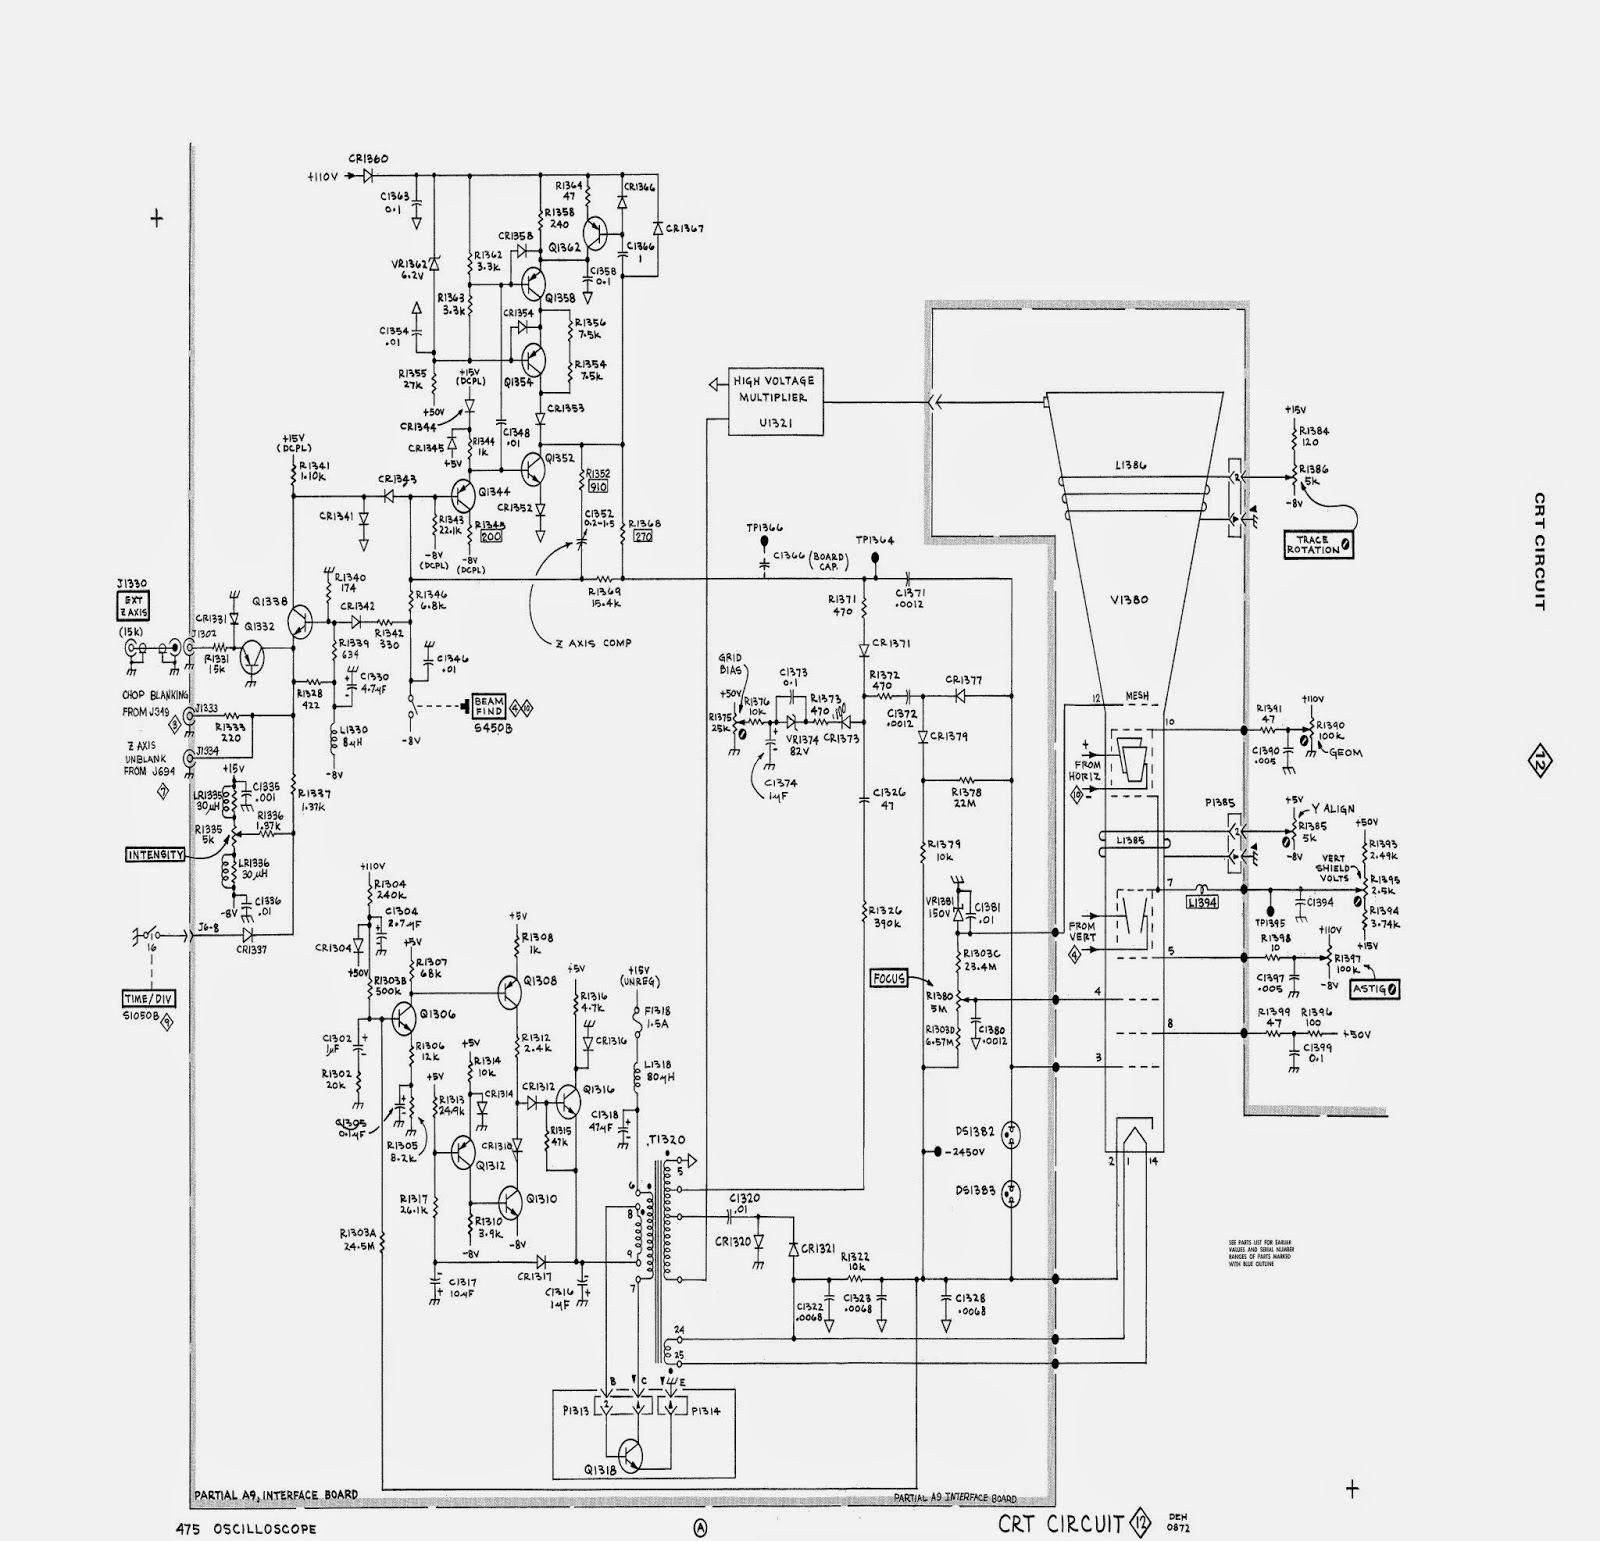 musings of a wahz: i have a tektronix 475! crt schematic diagram #3